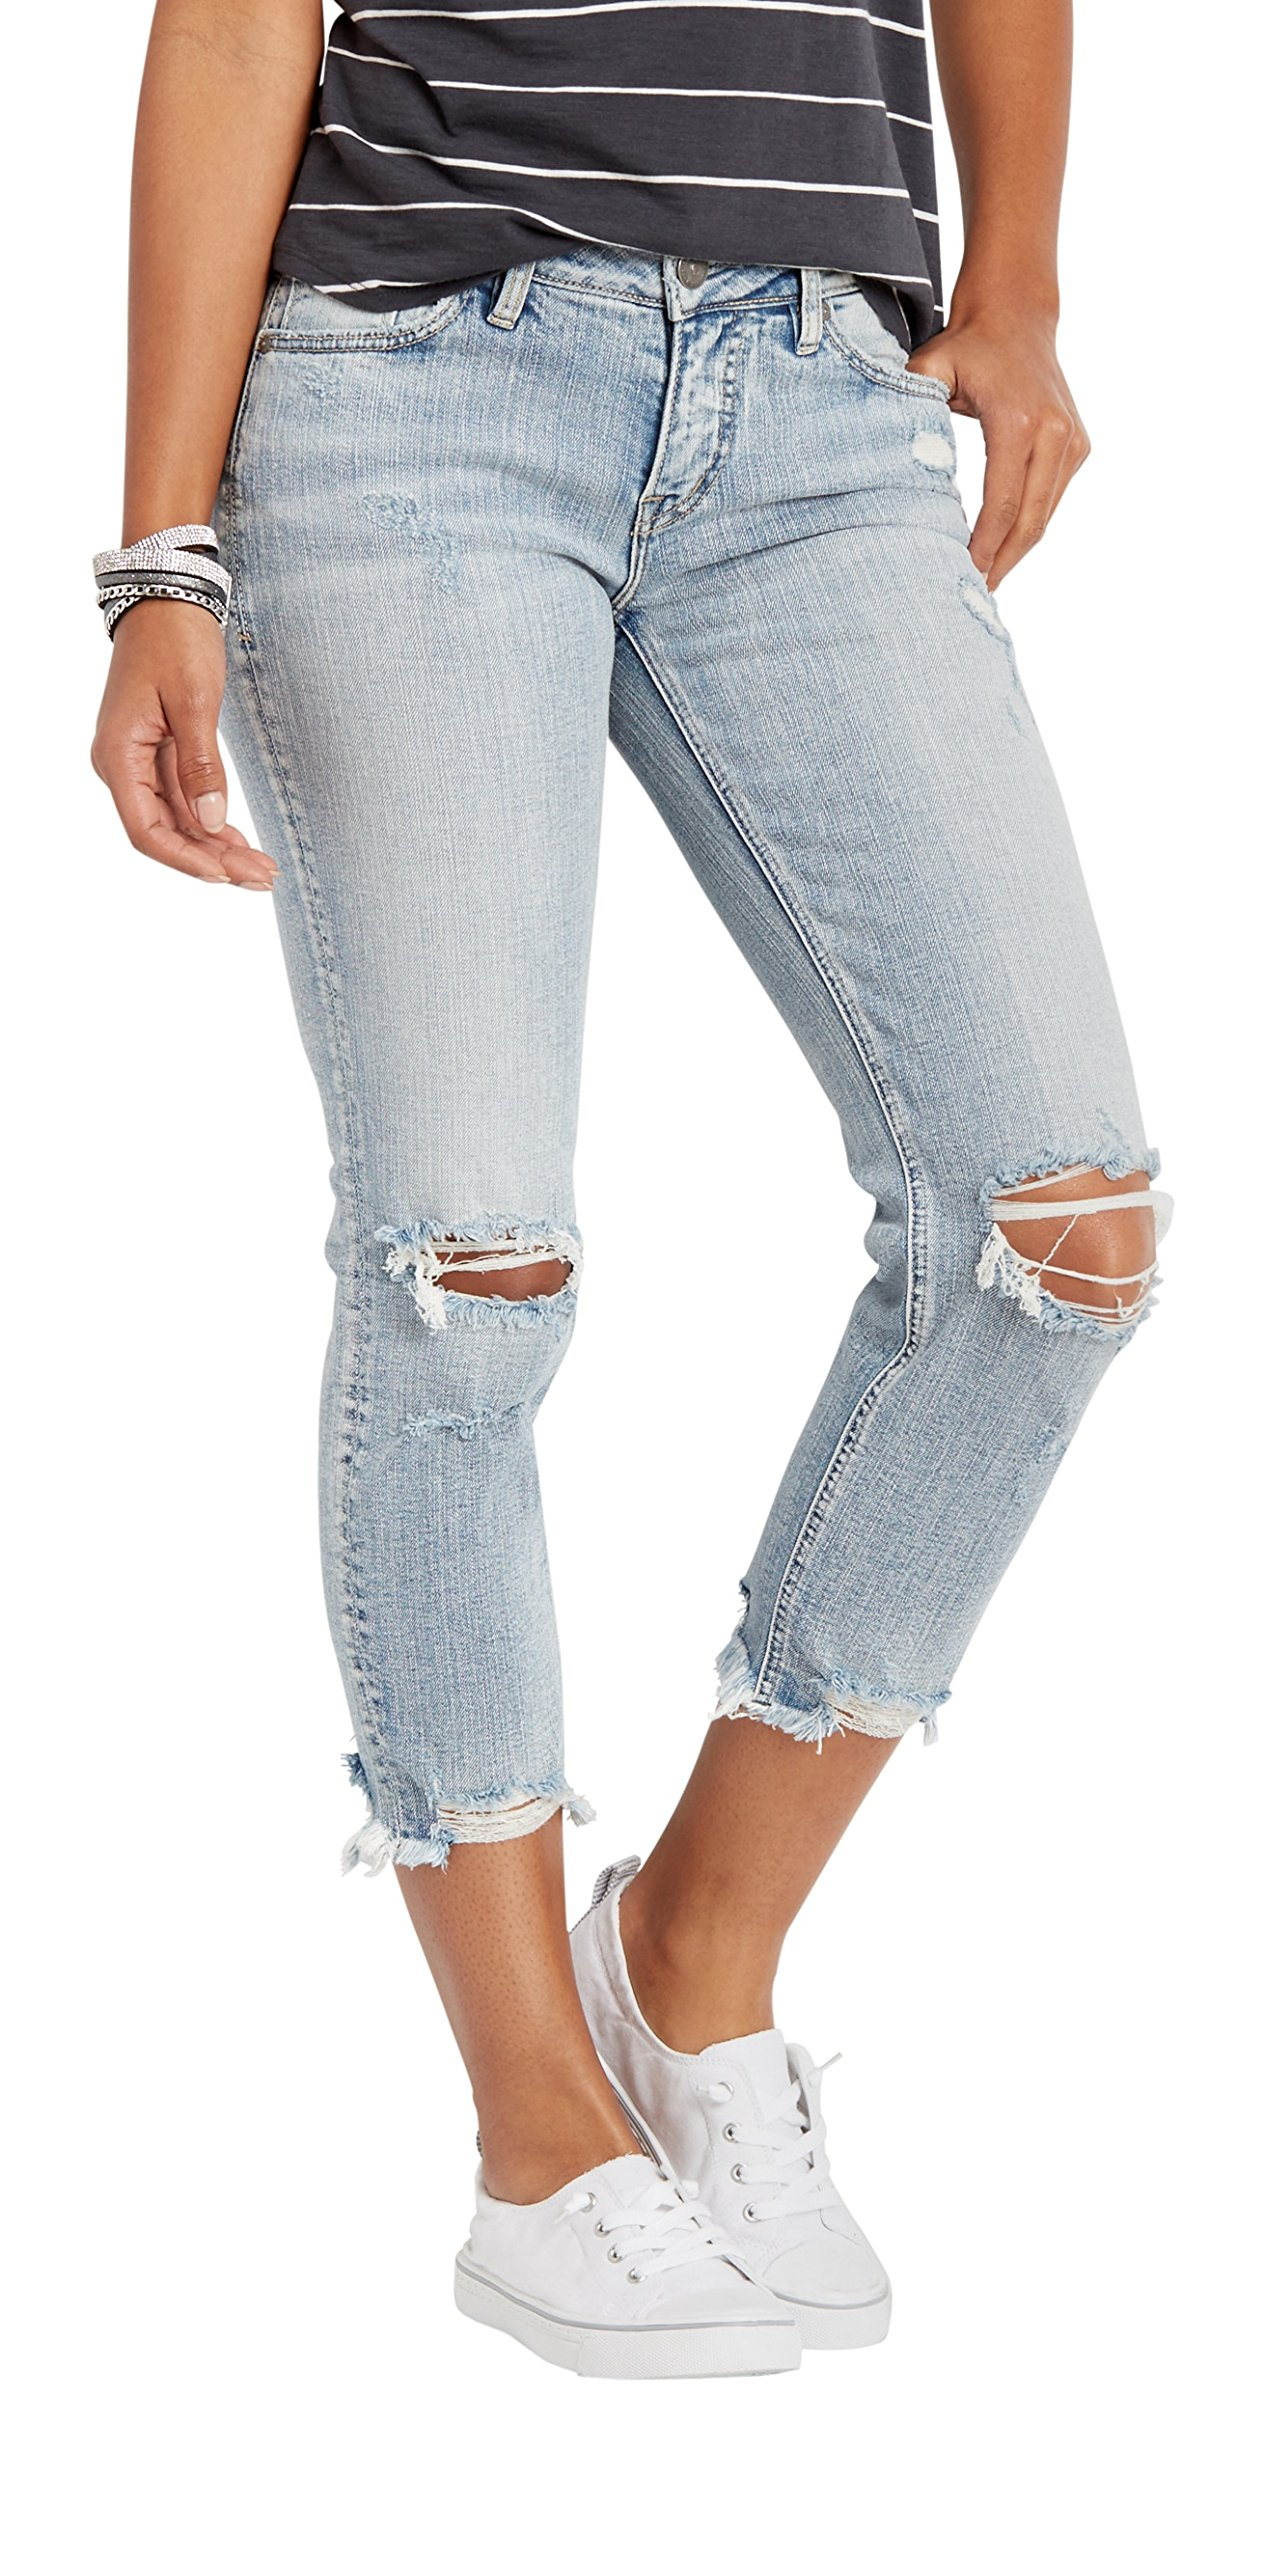 Silver Jeans Co. Women's Aiko Fit Mid-Rise Slim Crop Jeans, Light Destroyed Wash, 27x25 by Silver Jeans Co. (Image #3)